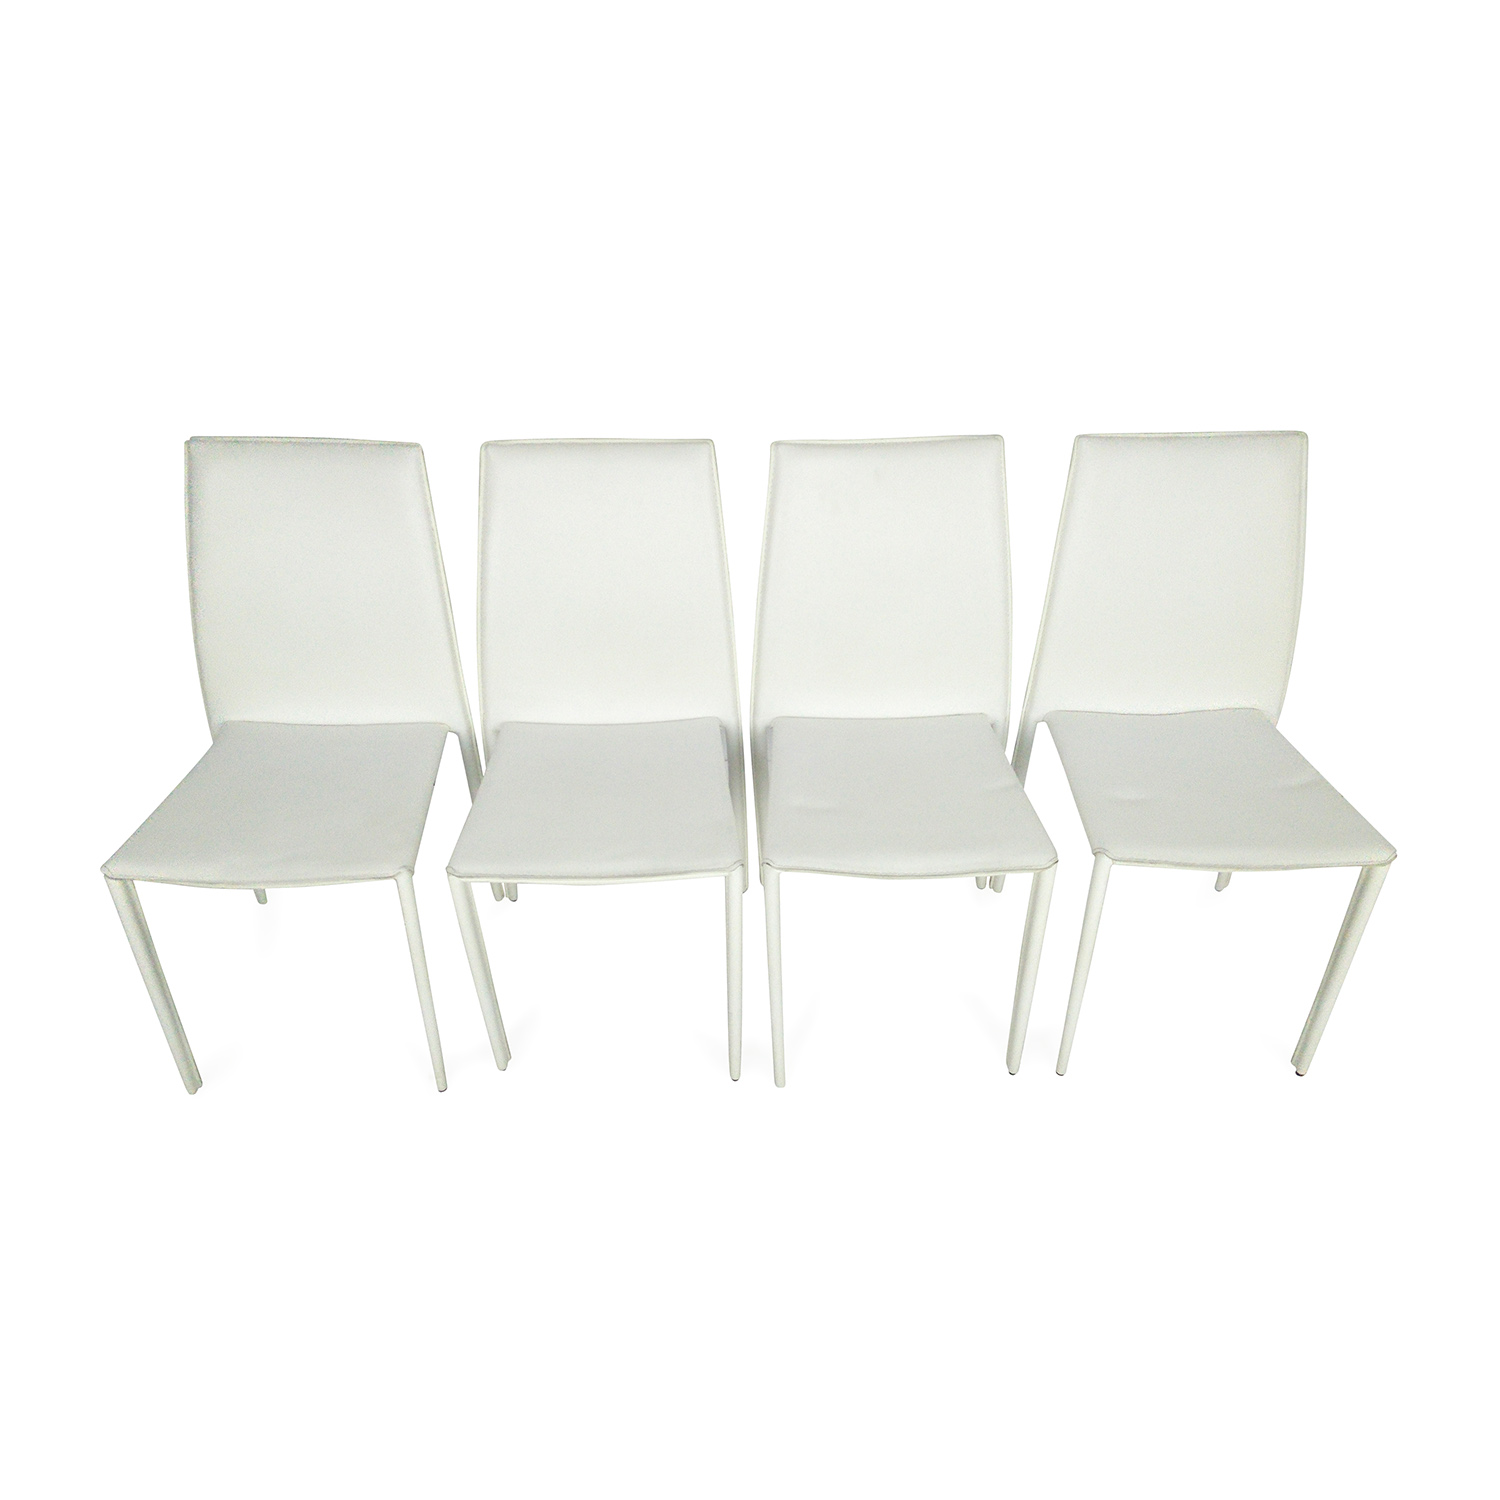 All modern all modern 4 dining chairs on sale